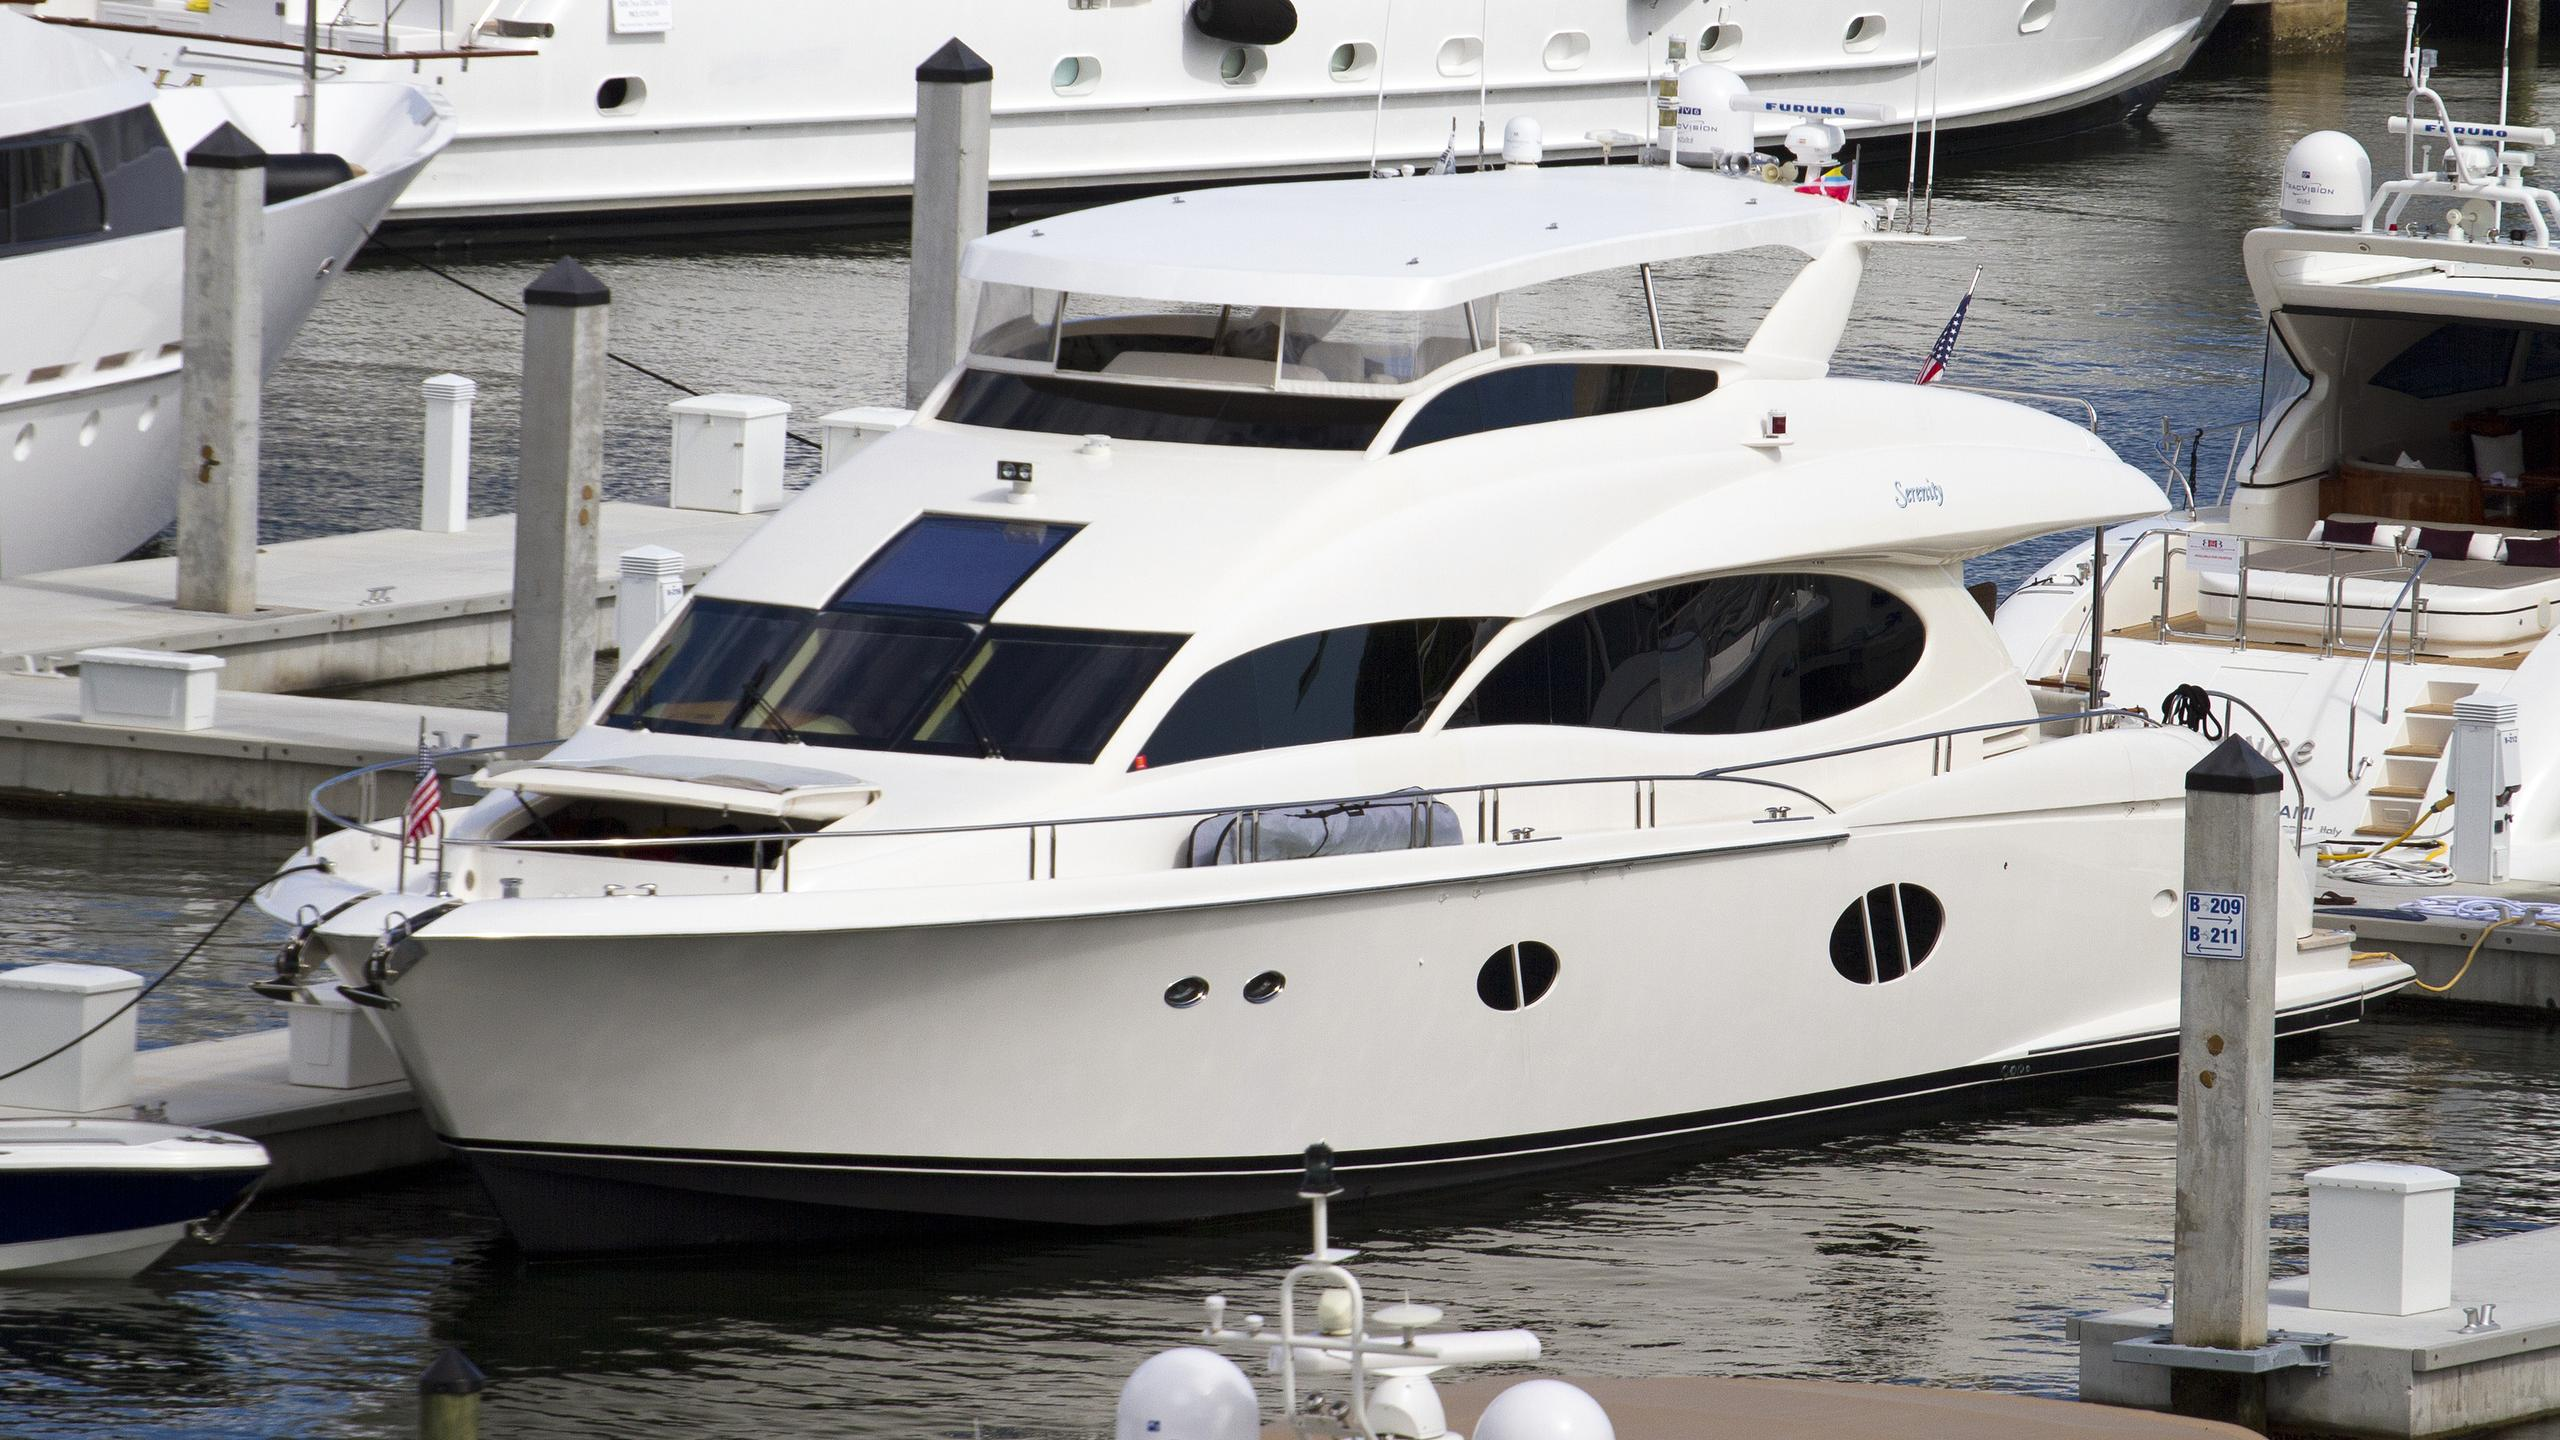 shades of blue serenity motoryacht lazzara 84 2006 26m half profile